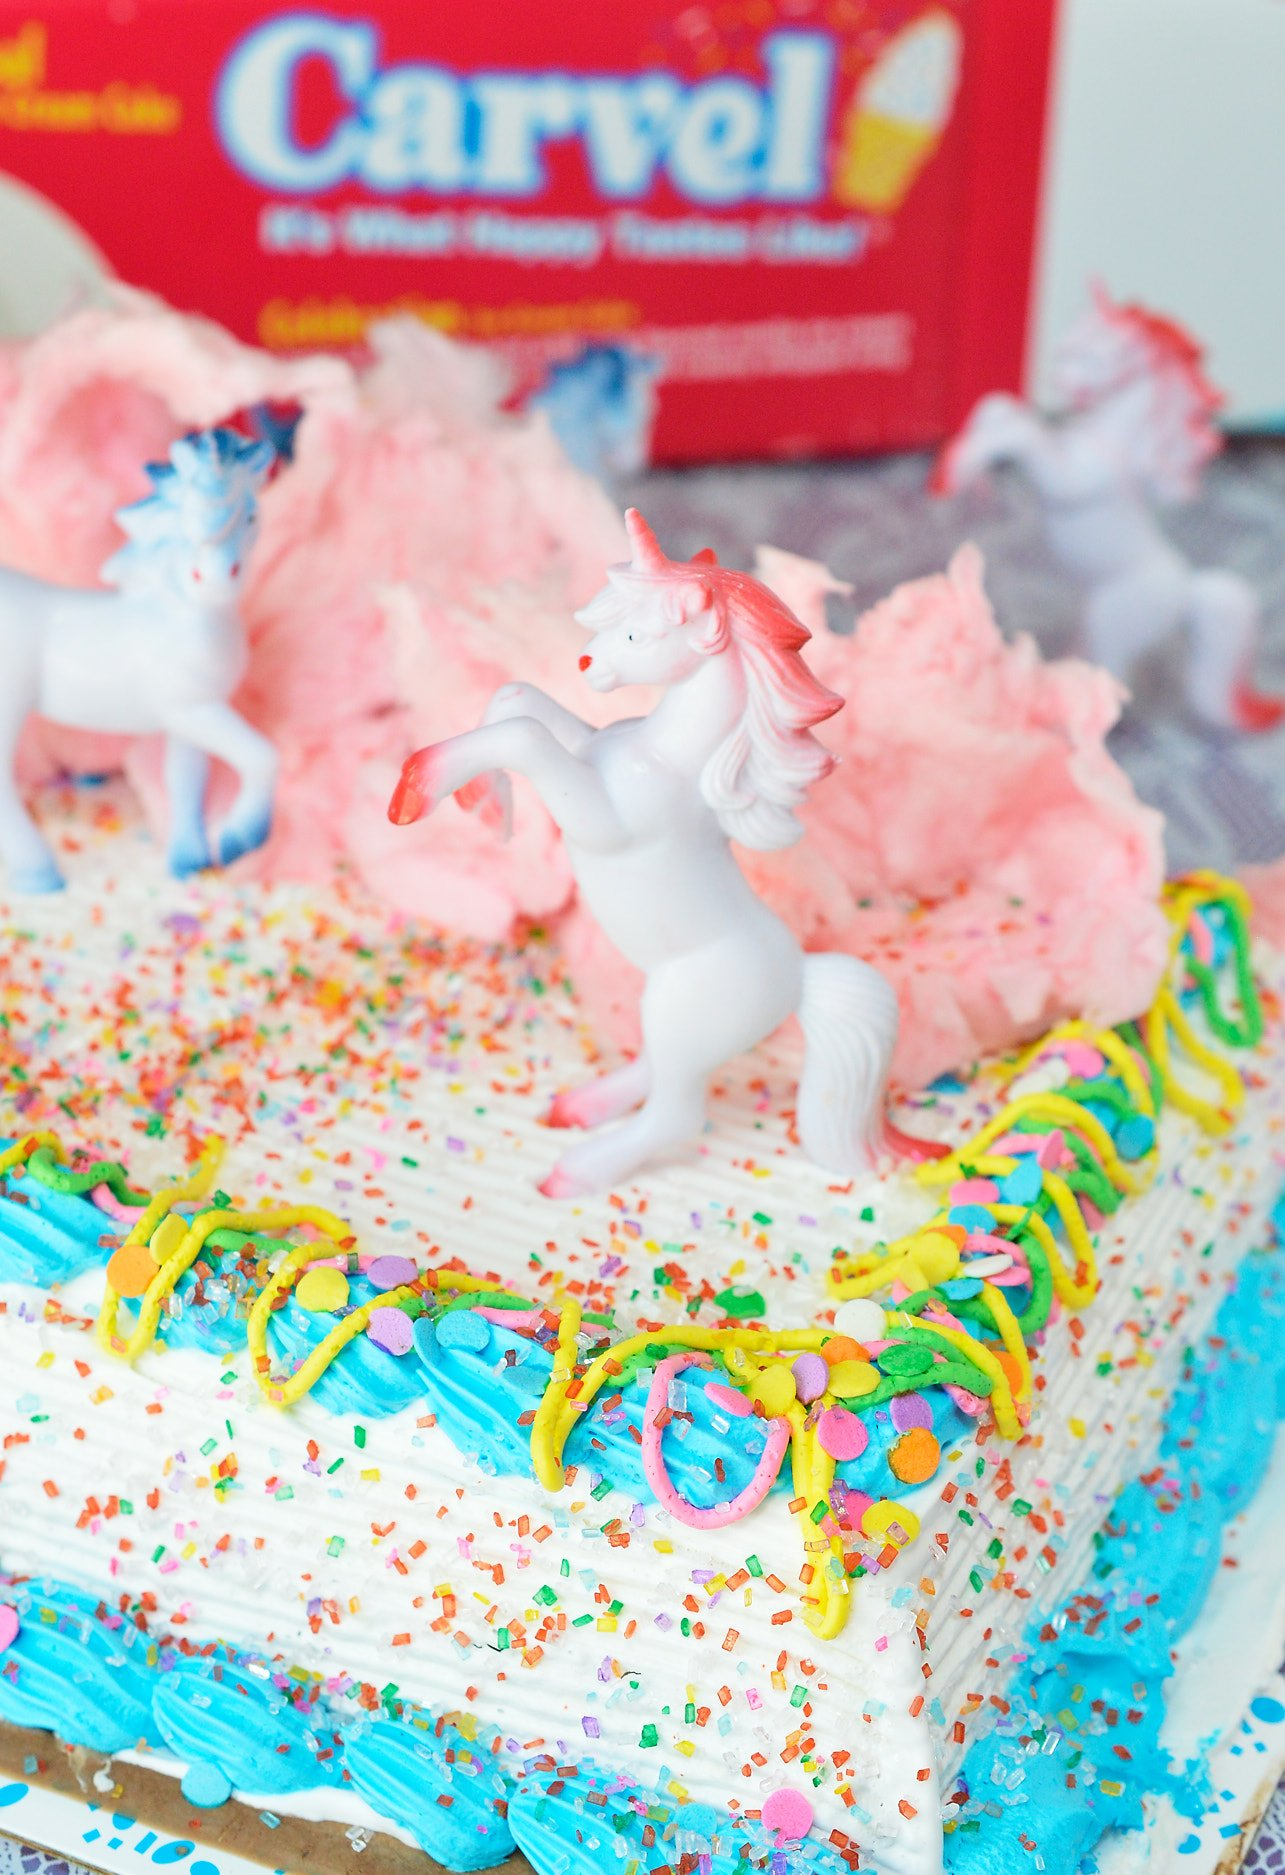 Get the party started with thisCotton Candy Unicorn Party Punch and Unicorn Ice Cream Cake! The punch recipe is made simply with 2 ingredients and the ice cream cake takes just minutes to decorate. The kids will love this fun and colorful drink!